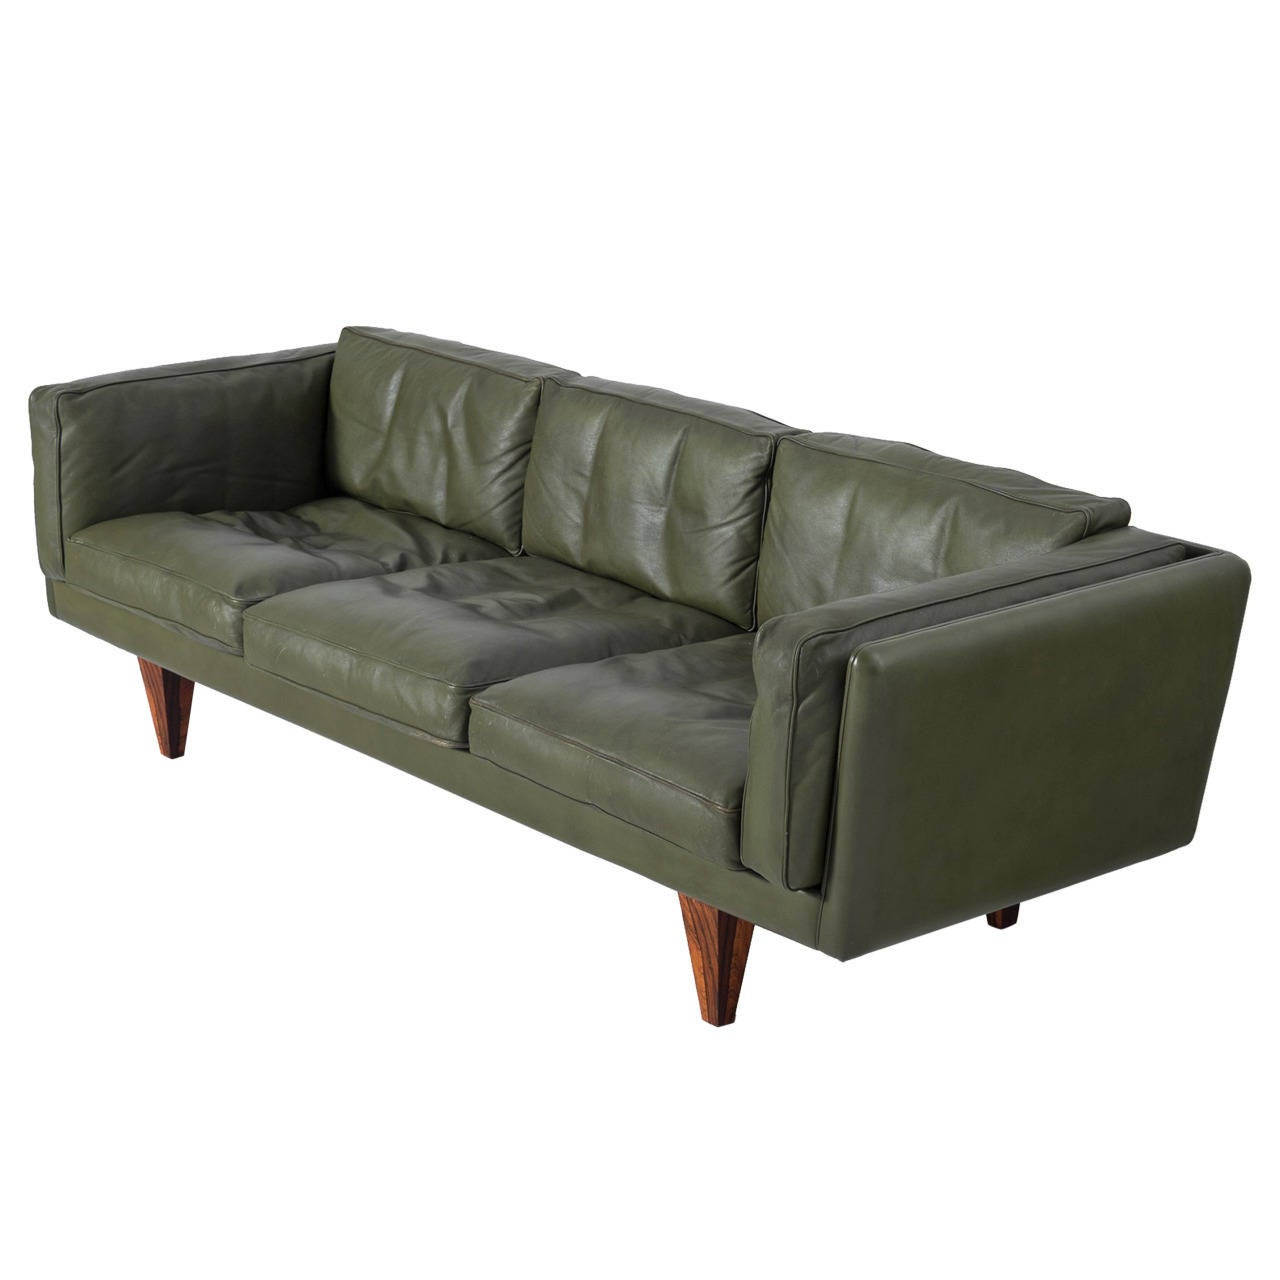 Sofa By Illum Wikkels Down Filled Cushions For Sale At 1stdibs